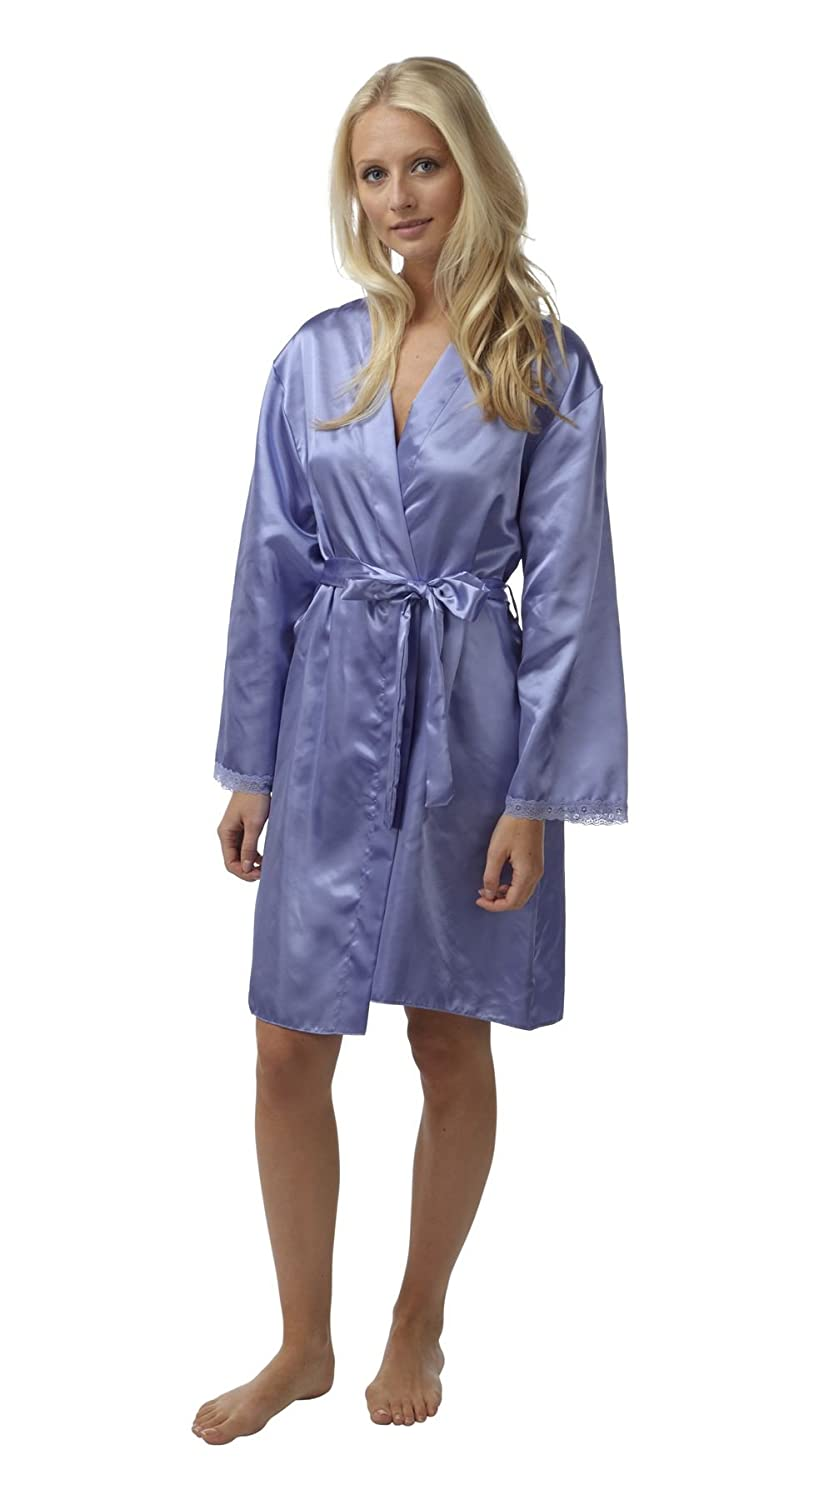 BHS Womens/Ladies Nightwear/Sleepwear Satin Long Sleeve Bathrobe ...